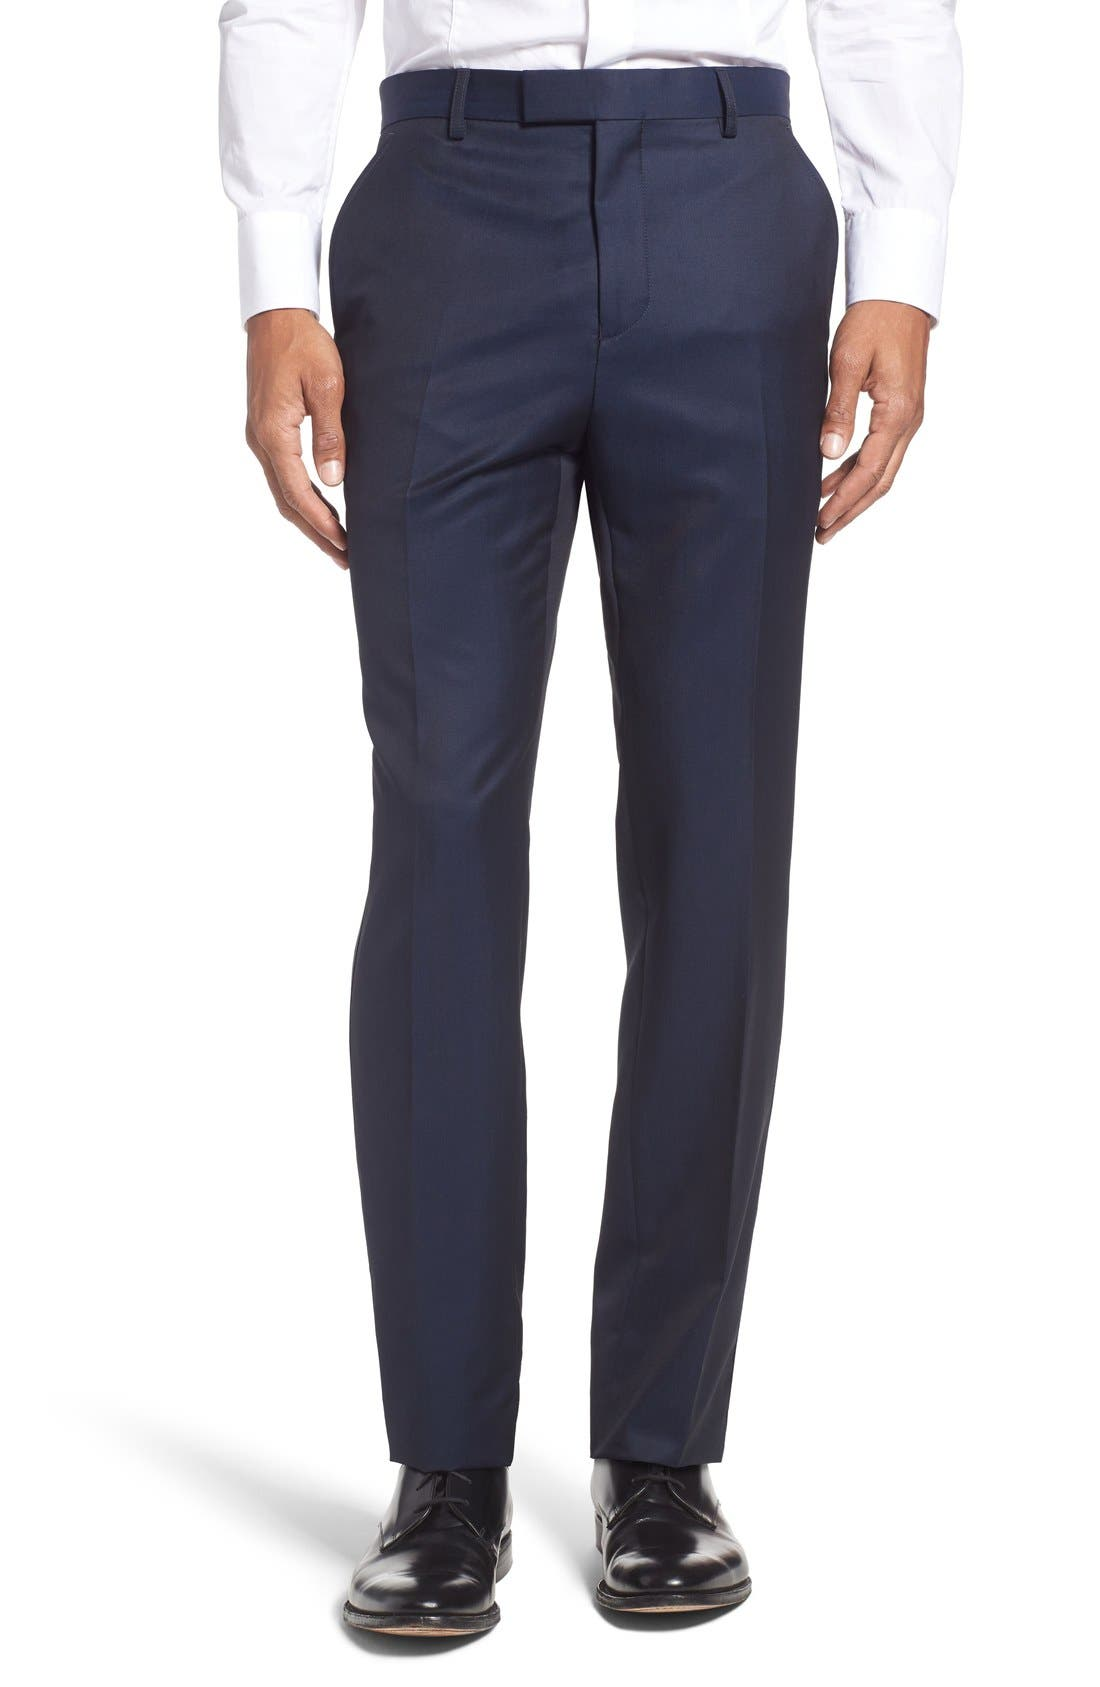 'Pashion' Flat Front Wool & Mohair Trousers,                             Main thumbnail 1, color,                             410